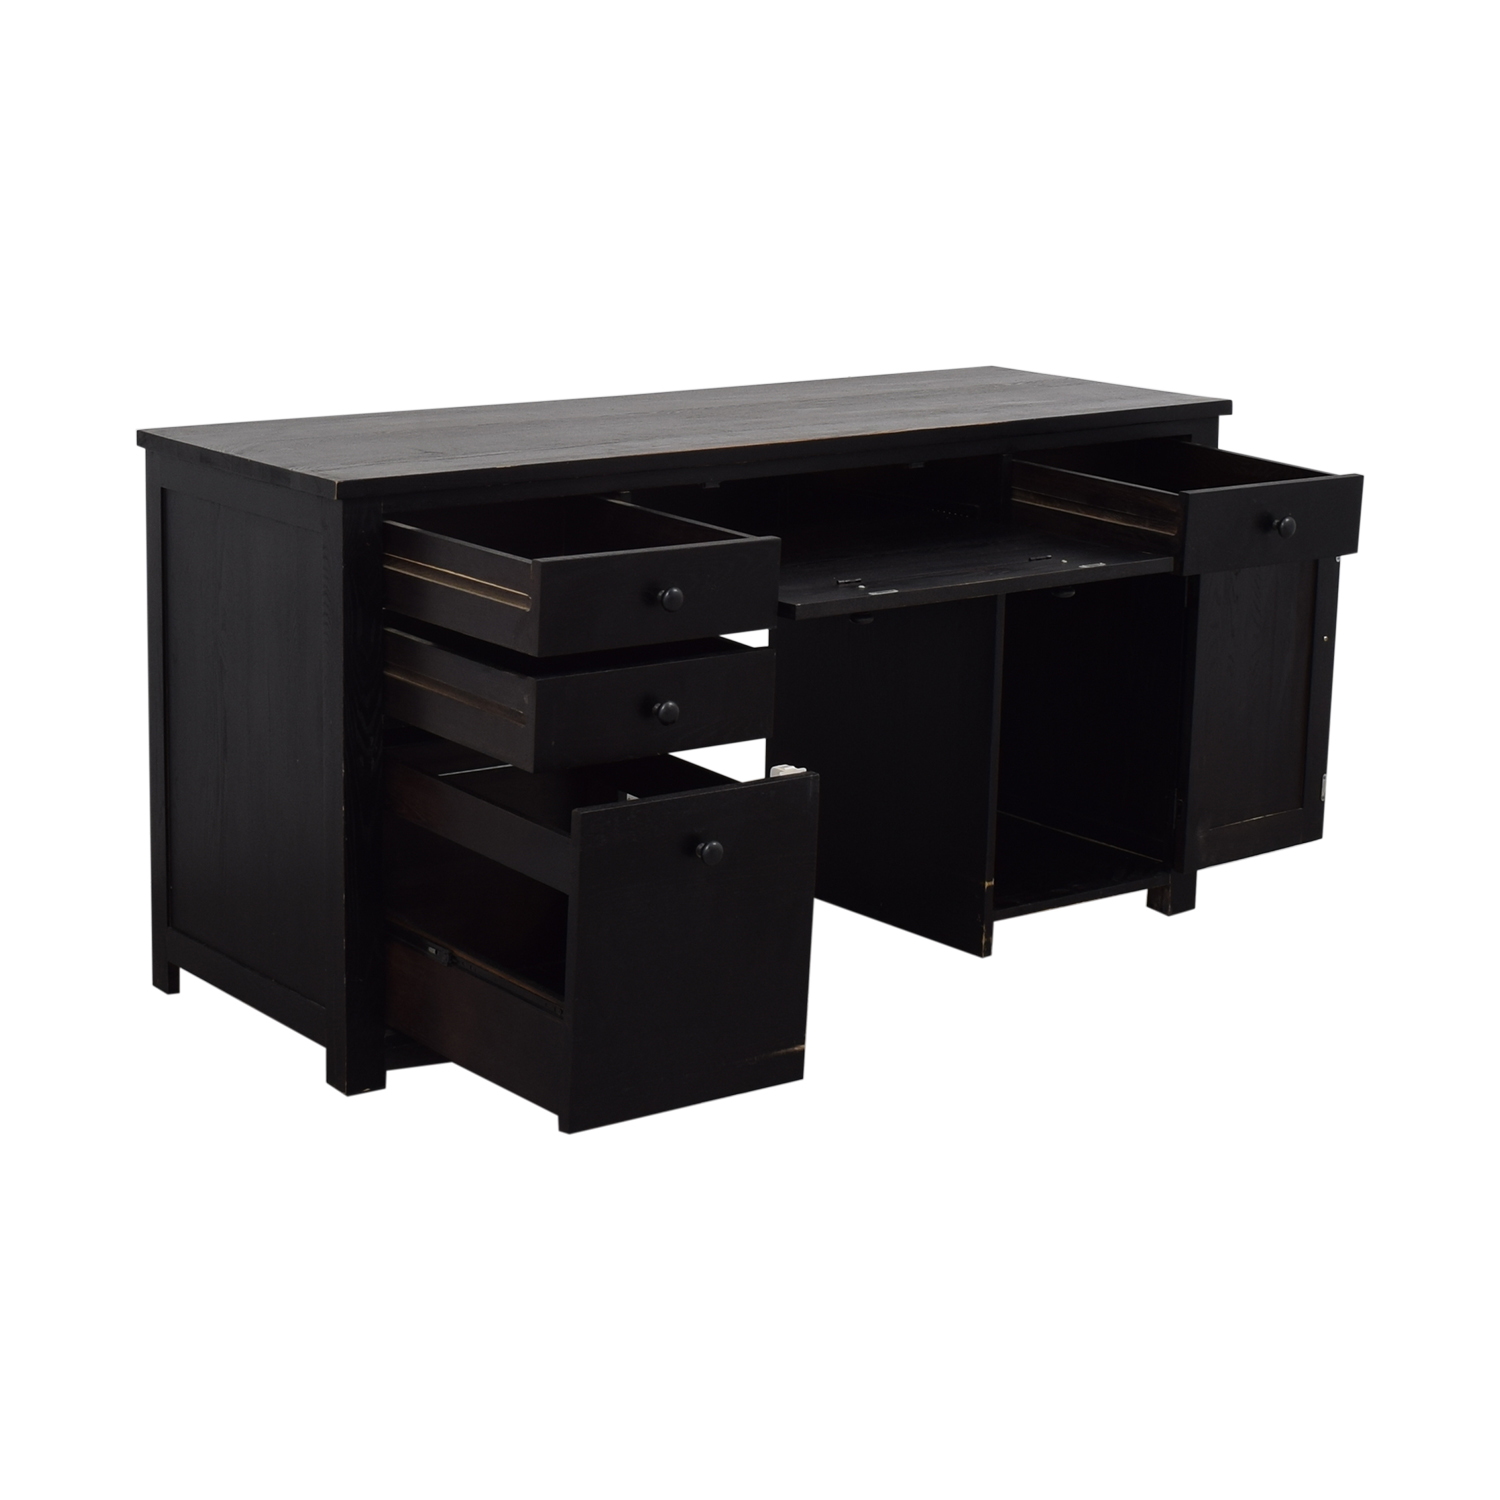 Black Four Drawer Desk with Keyboard Tray and Storage / Home Office Desks